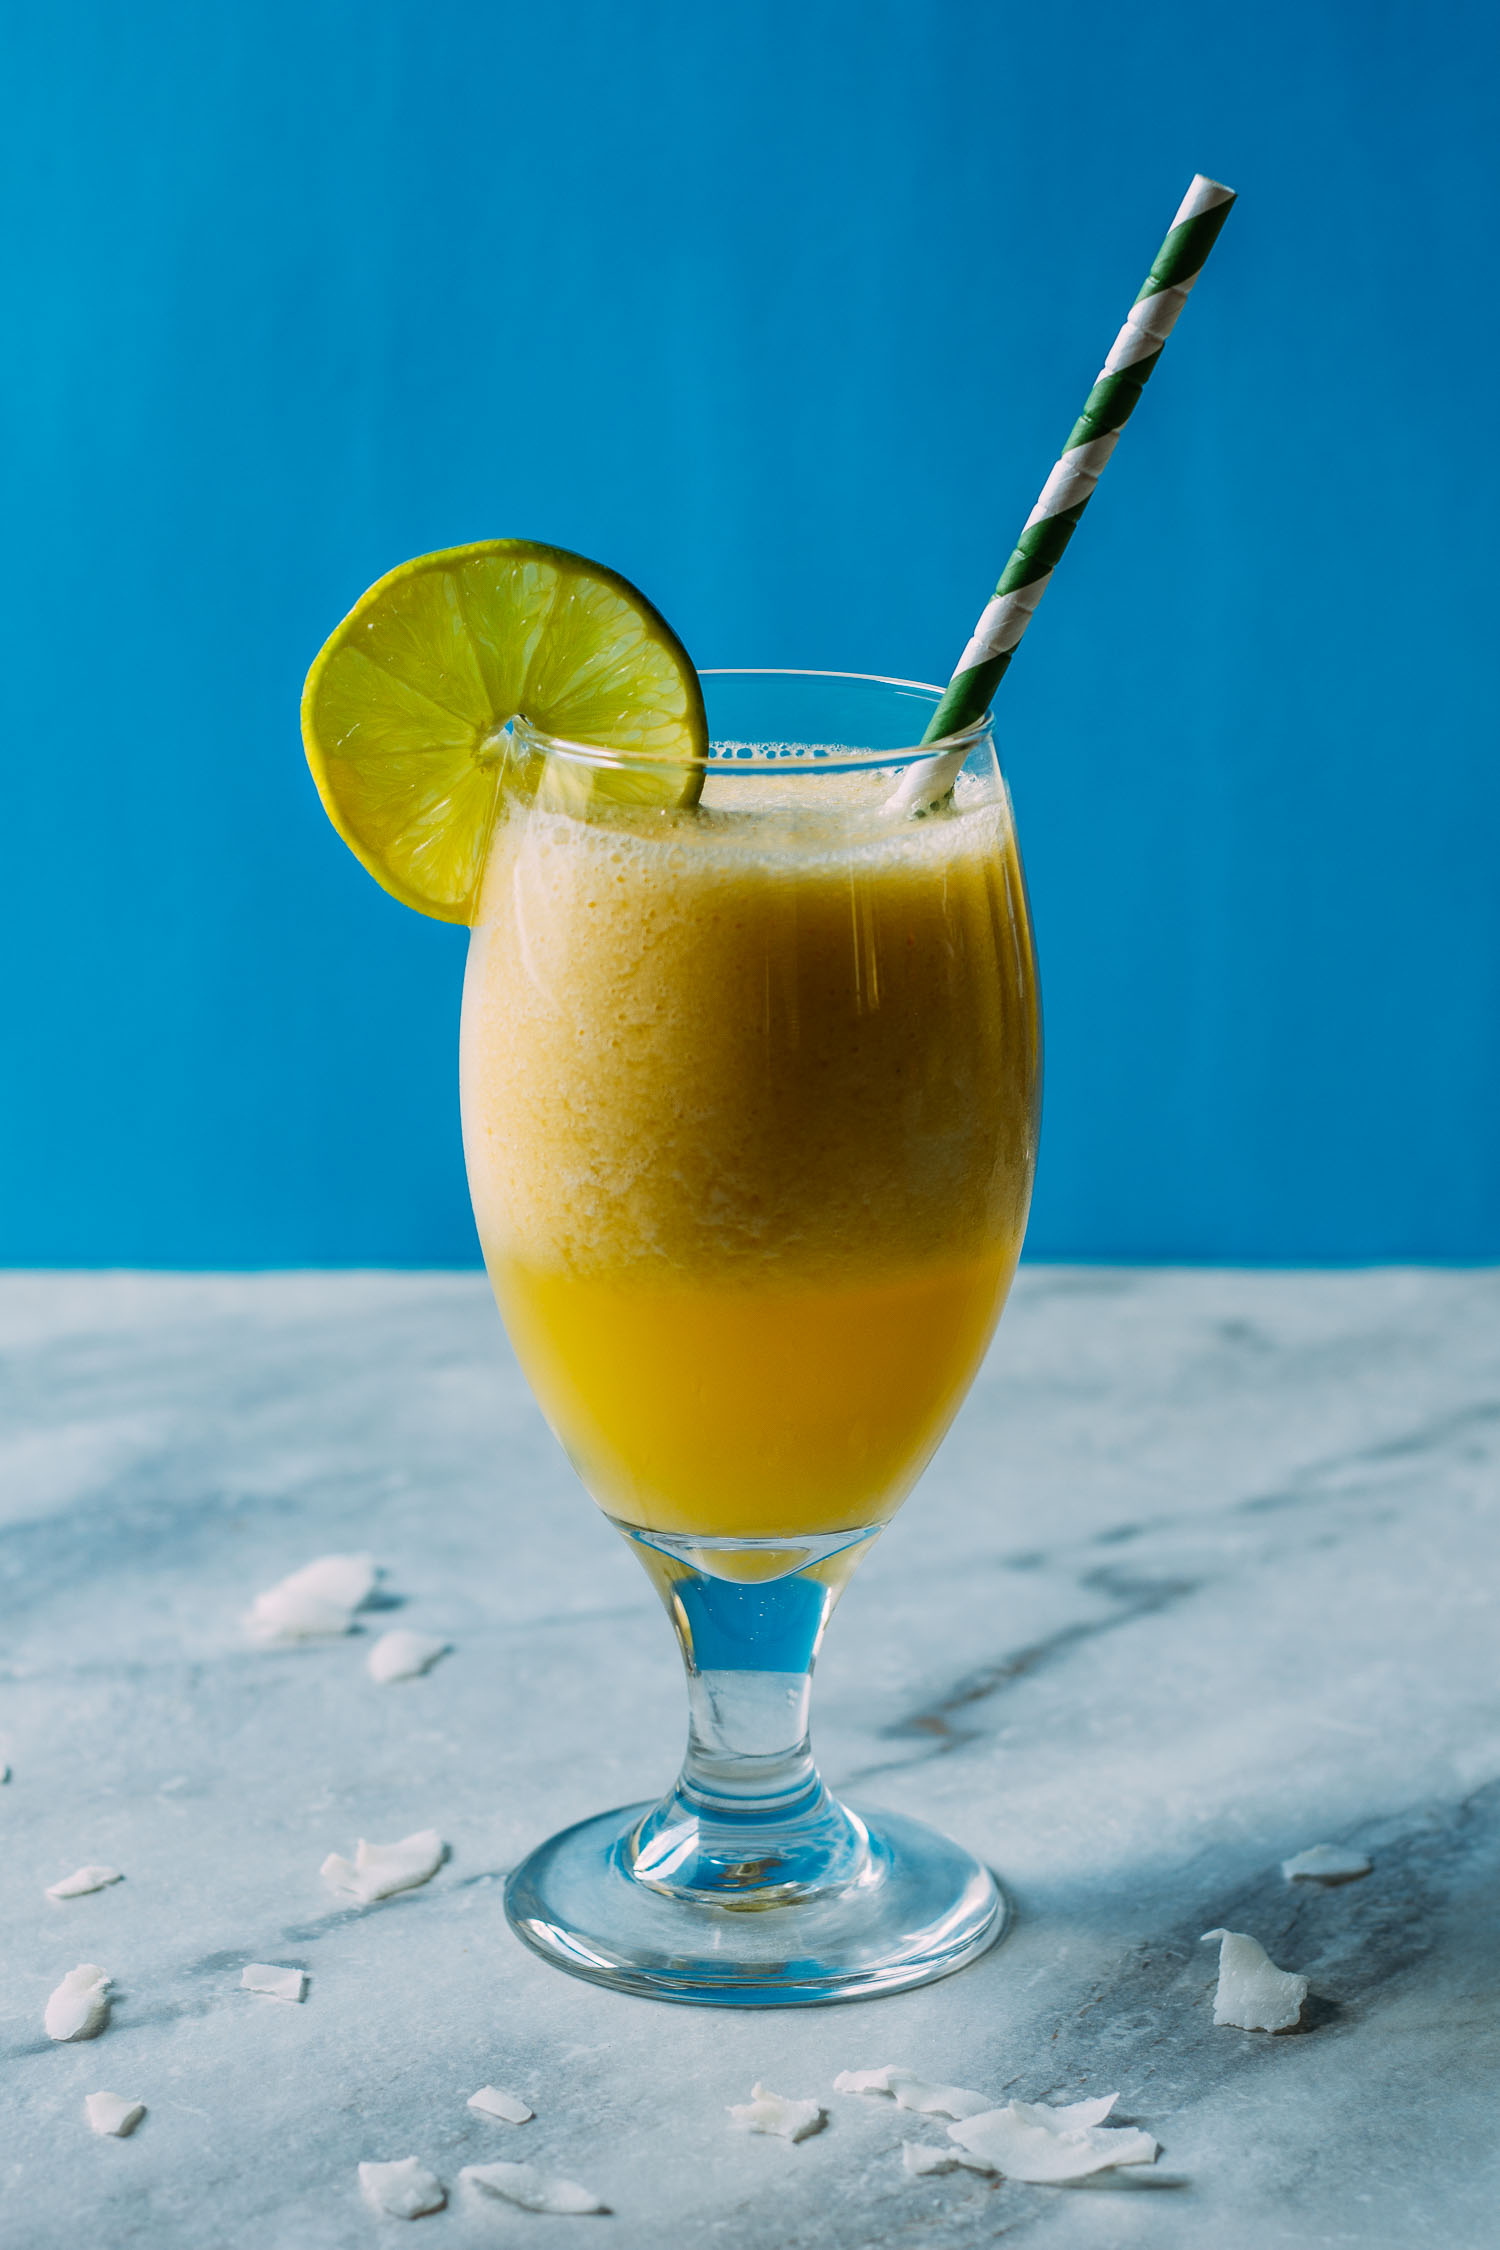 Refreshingly Lite Pina Colada Mango Smoothie #fruit #drink #summertime #recipes #entertaining #wfpb